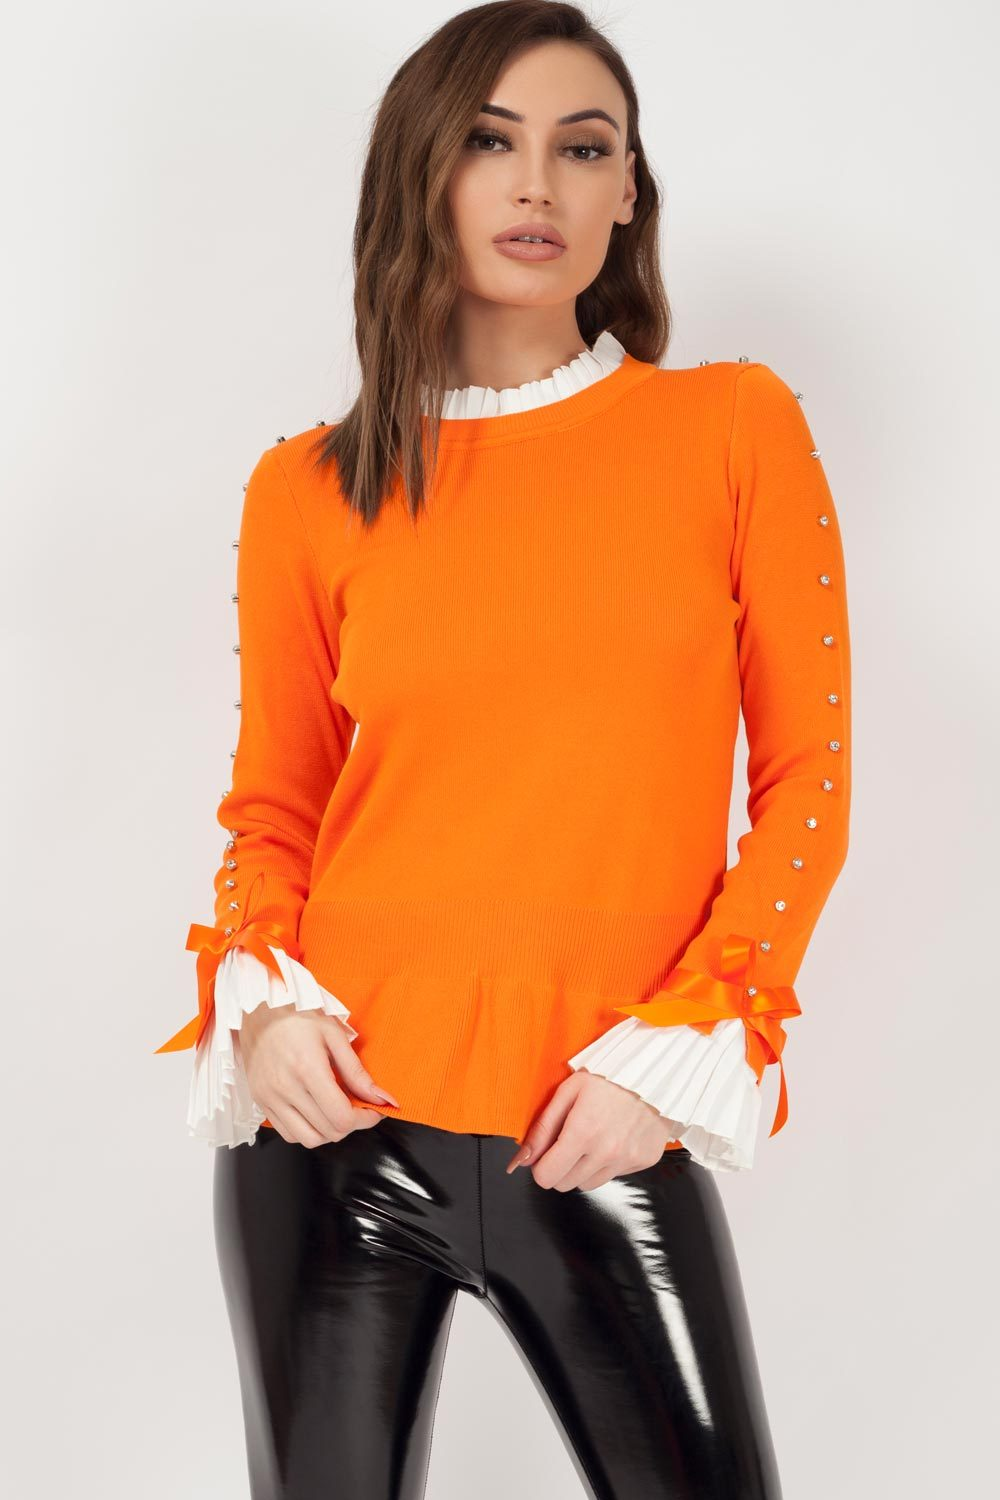 jumper with bow detail